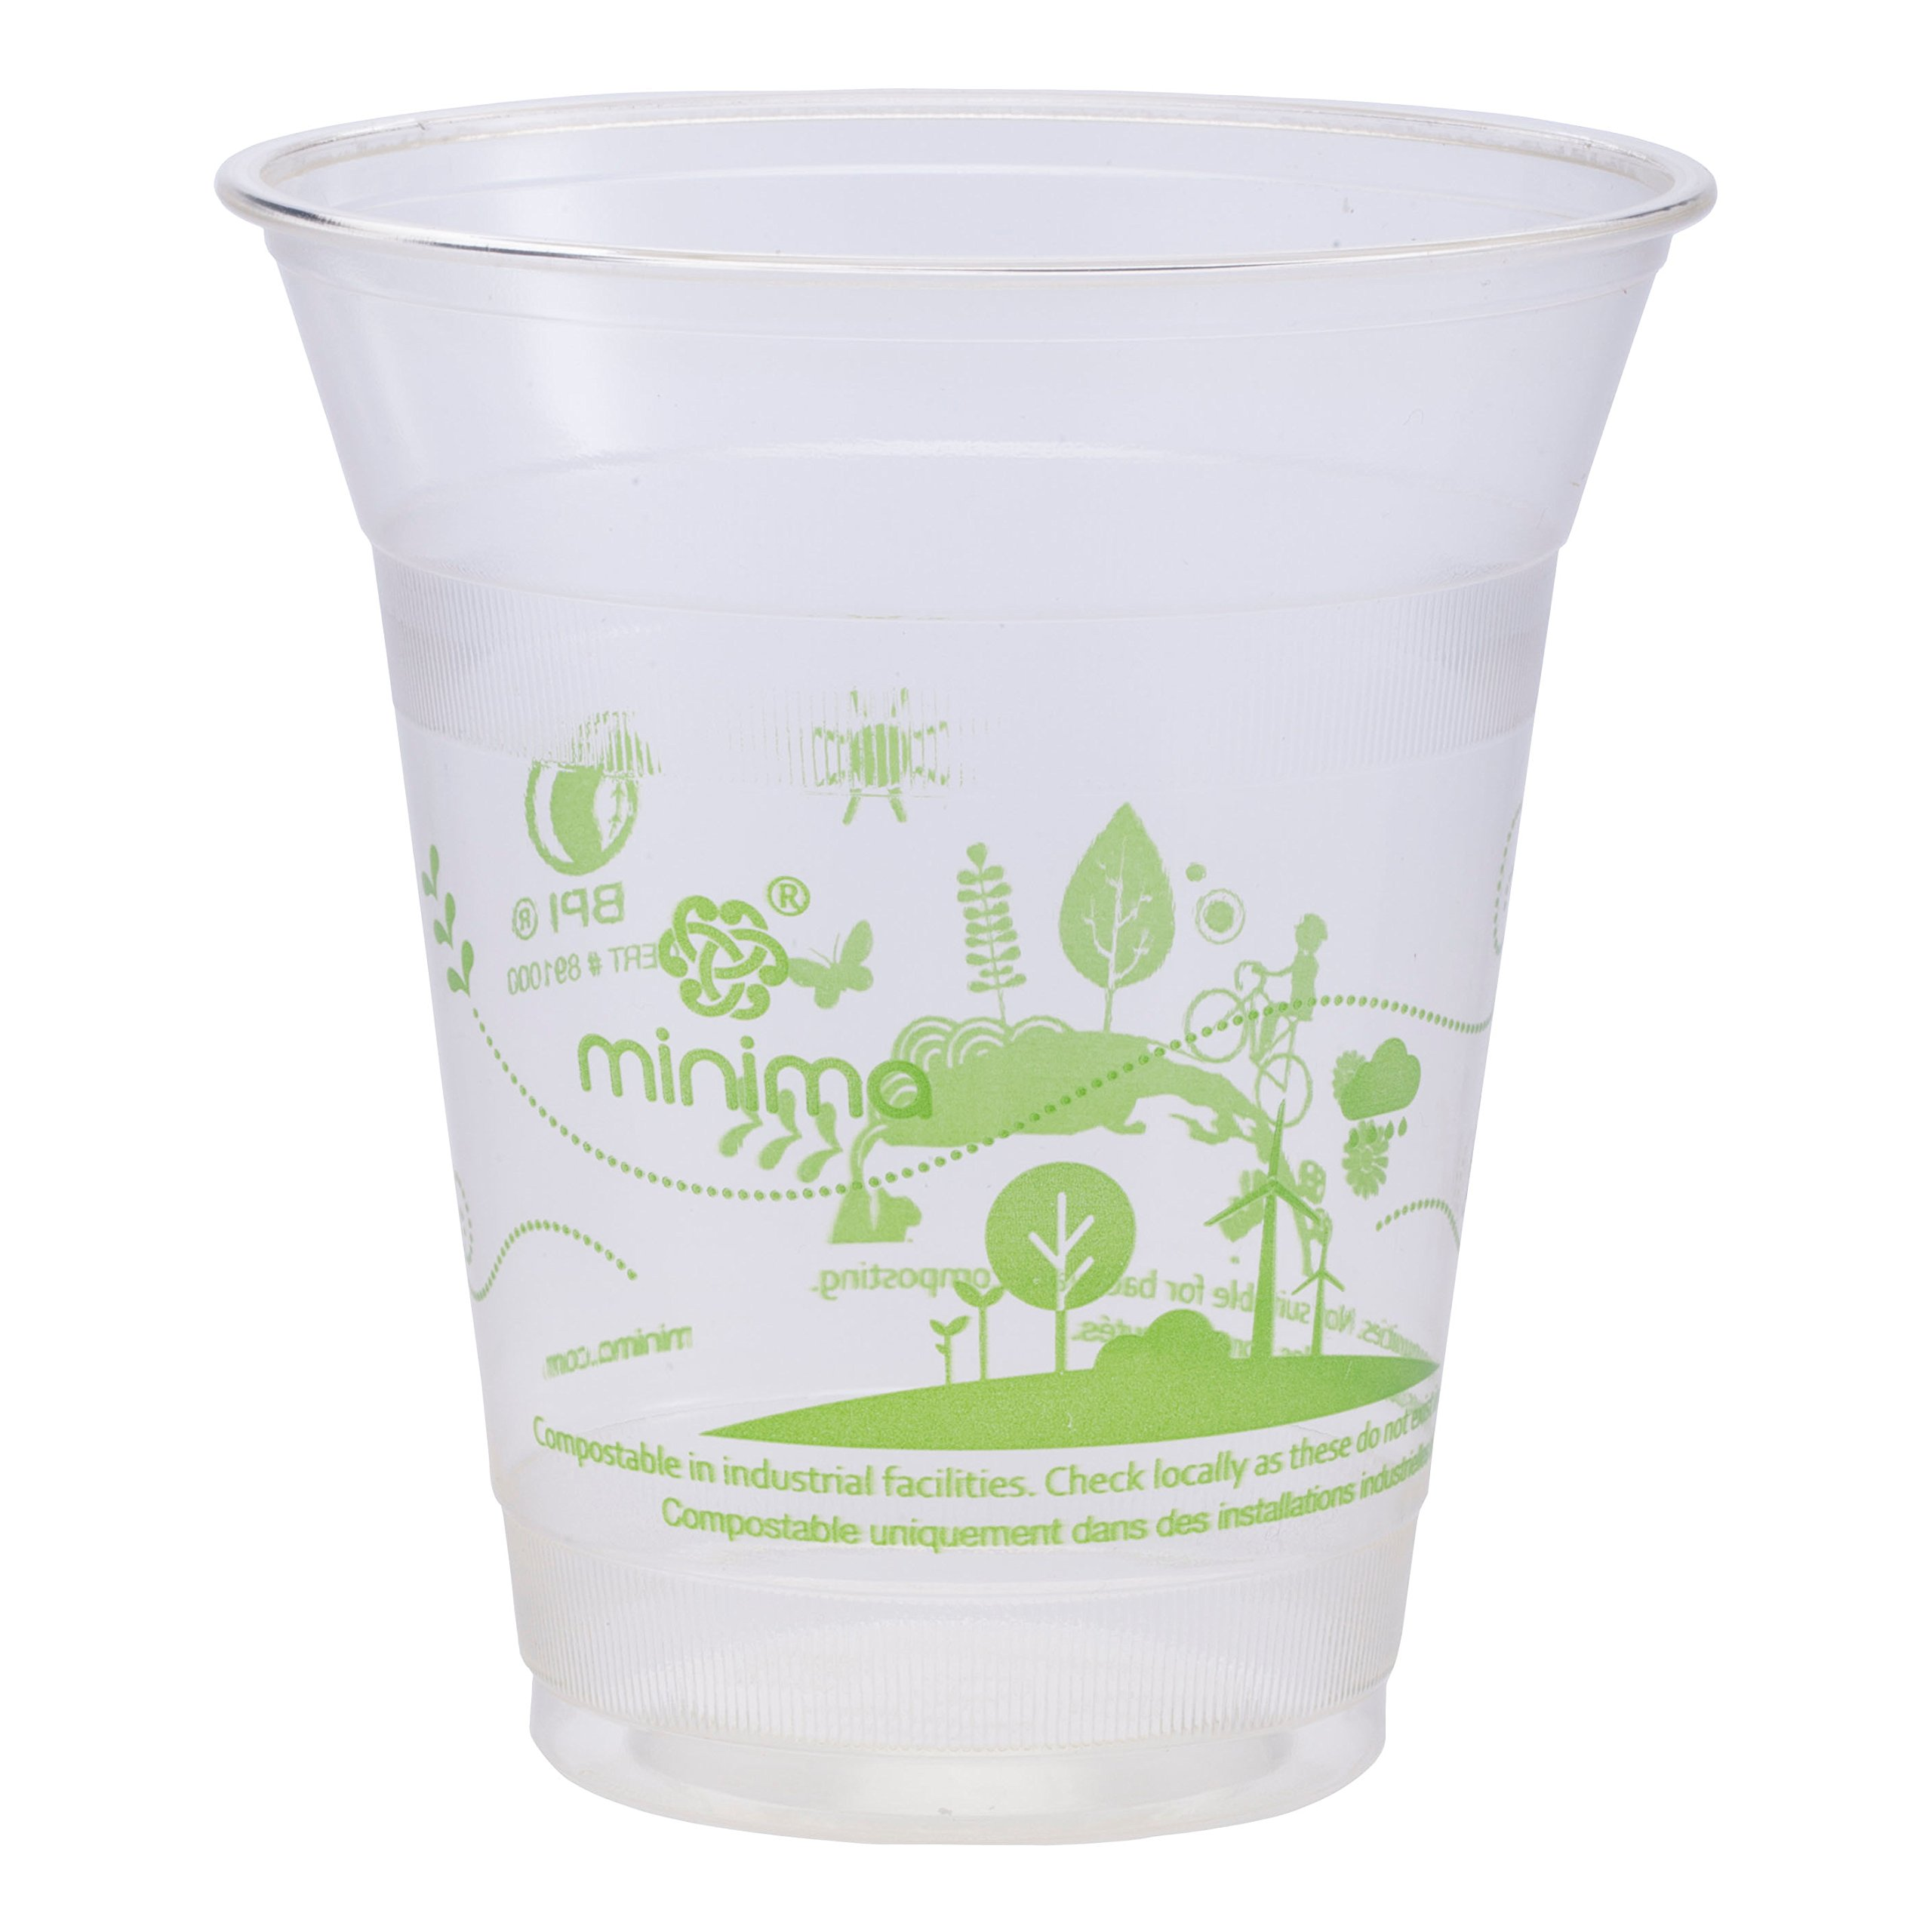 Minima 12 oz 1000 Count Compostable Cold Cups – 100% BPI-CERTIFIED Biodegradable & Compostable certified Drink Cups (Circle of Life Design)